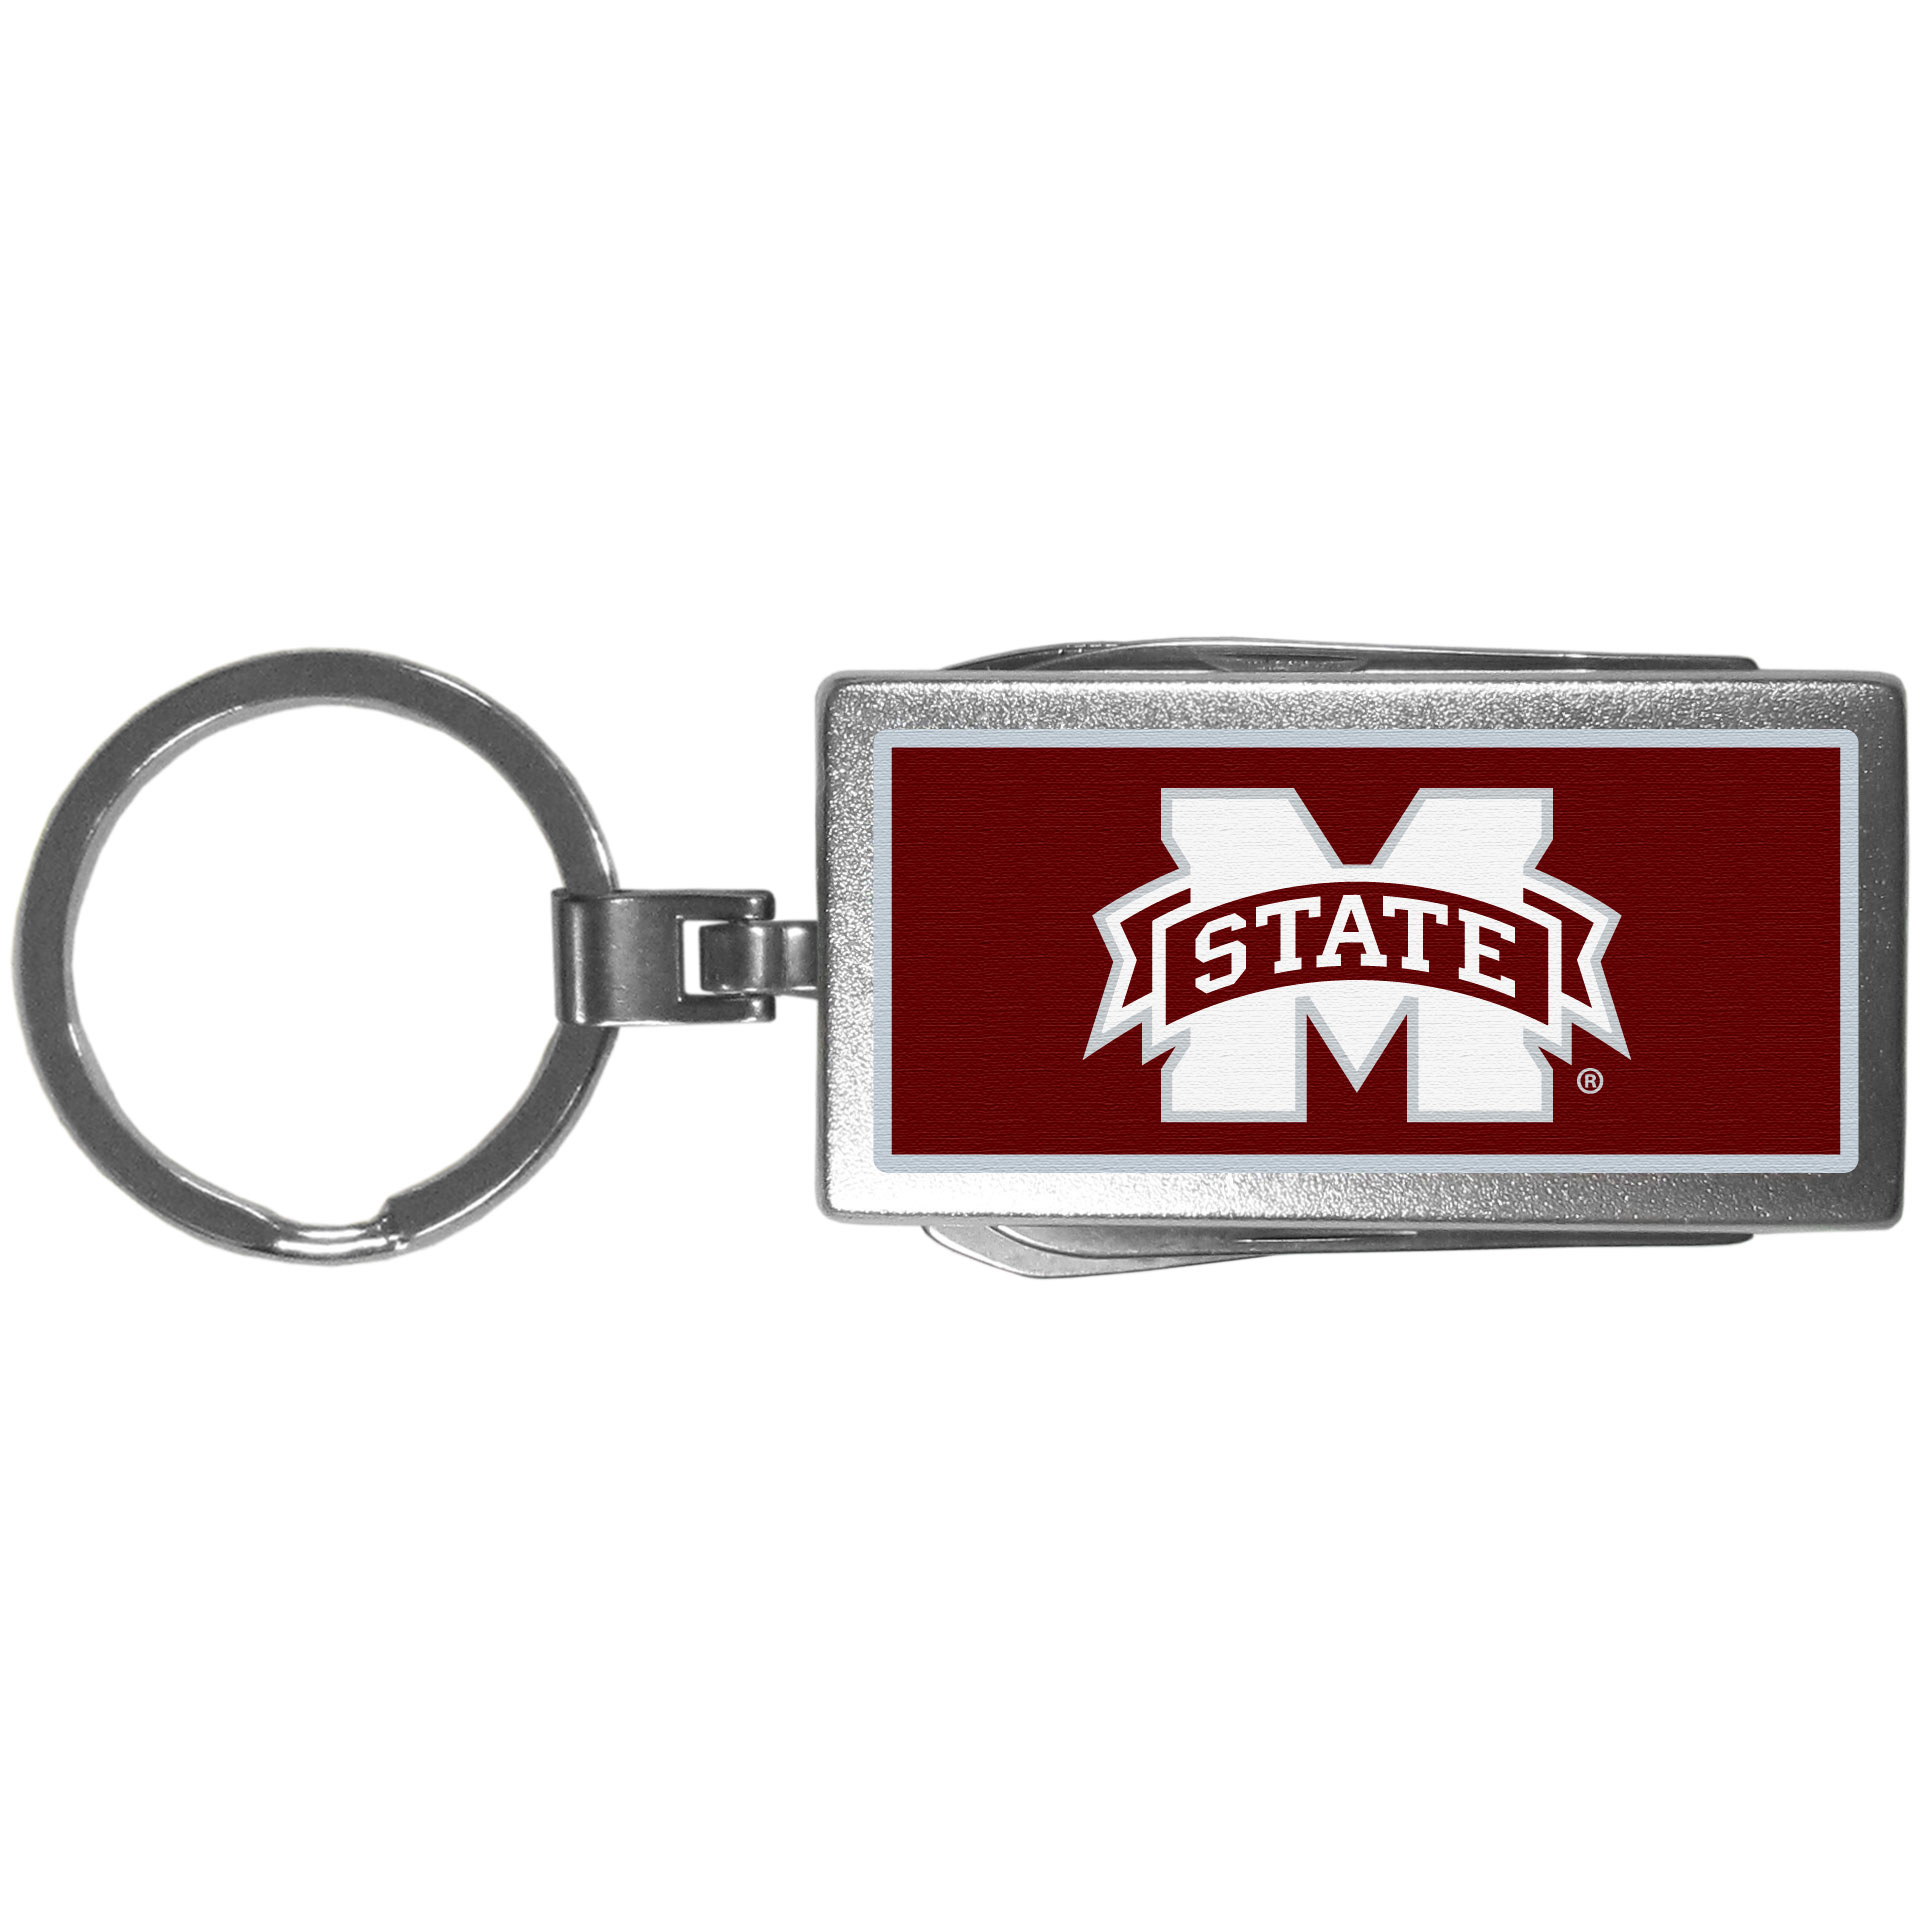 Mississippi St. Bulldogs Multi-tool Key Chain, Logo - Be the hero at the tailgate, camping, or on a Friday night with your Mississippi St. Bulldogs Multi-Tool Keychain which comes complete with bottle opener, scissors, knife, nail file and screw driver. Be it opening a package or a beverage Siskiyou's Multi-Tool Keychain goes wherever your keys do. The keychain hangs at 4 inches long when closed.